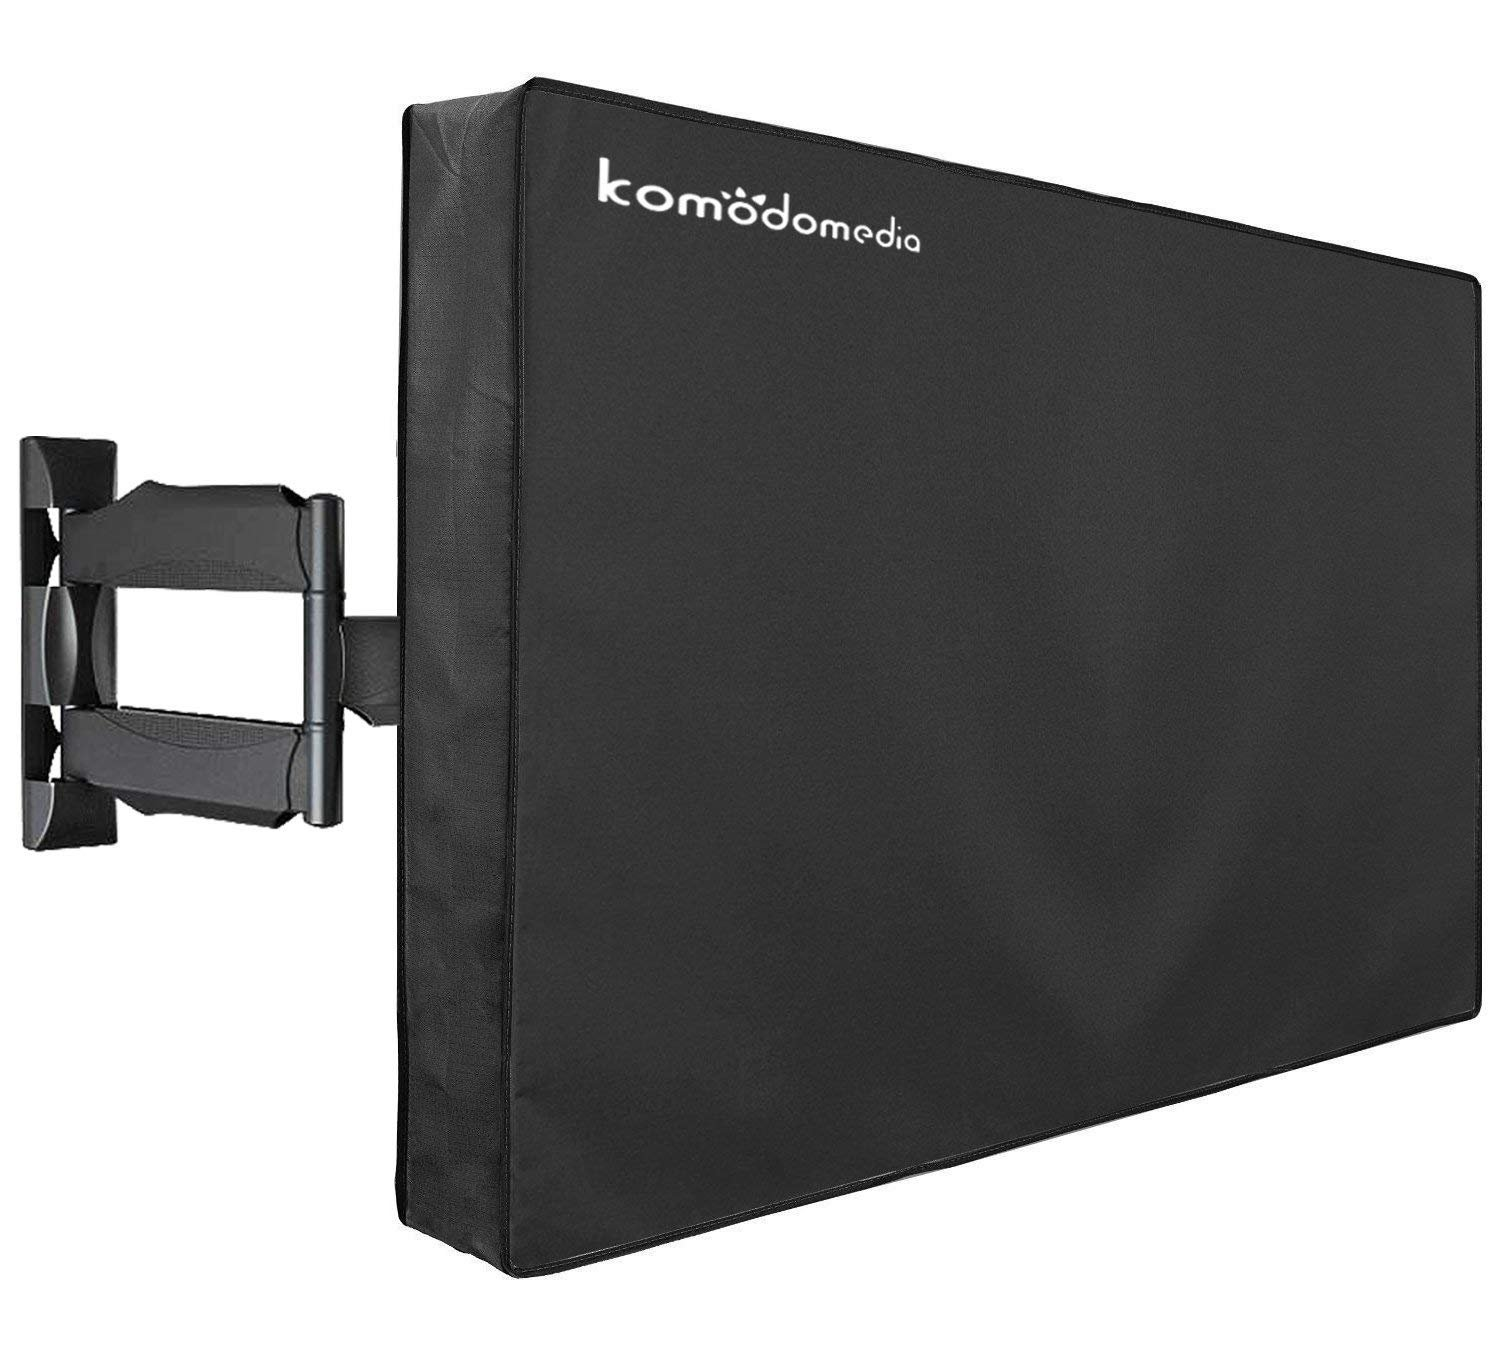 """Outdoor TV Cover 40"""" – 43"""" - Waterproof TV Enclosure Offers 360-Degree Coverage, Accommodates Single Mounts and Stands - Weatherproof, Dust-Proof, UV Protection - Heavy-Duty, Premium Quality by Komodomedia"""